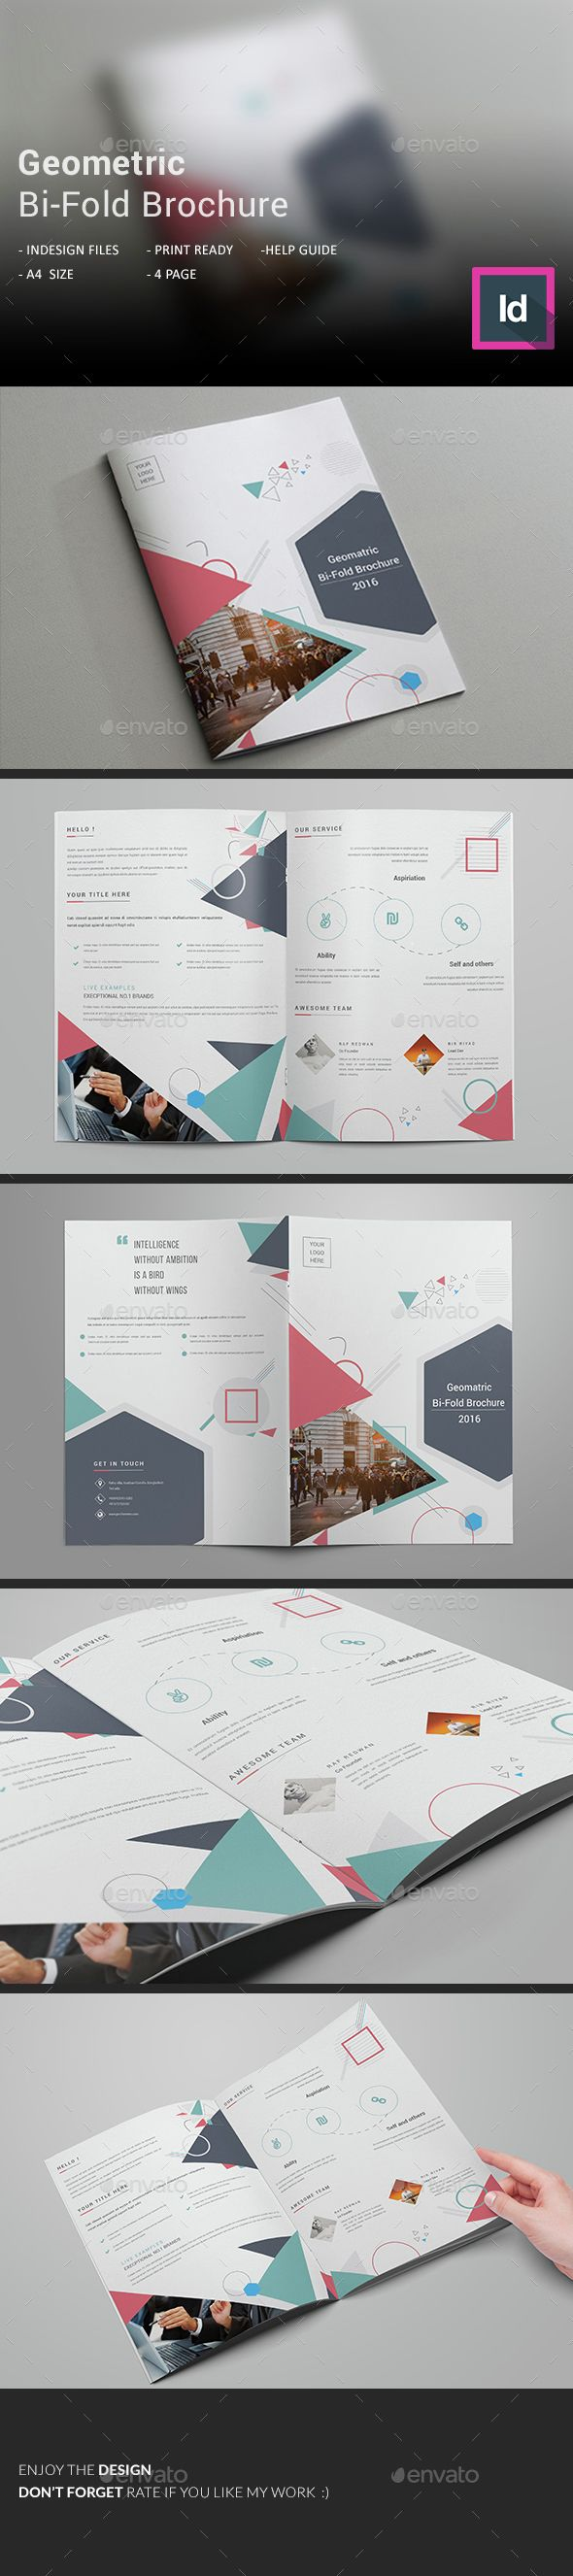 geometric bi fold brochure template indesign indd download here httpgraphicrivernetitemgeometric bifold brochure 15119093refksioks